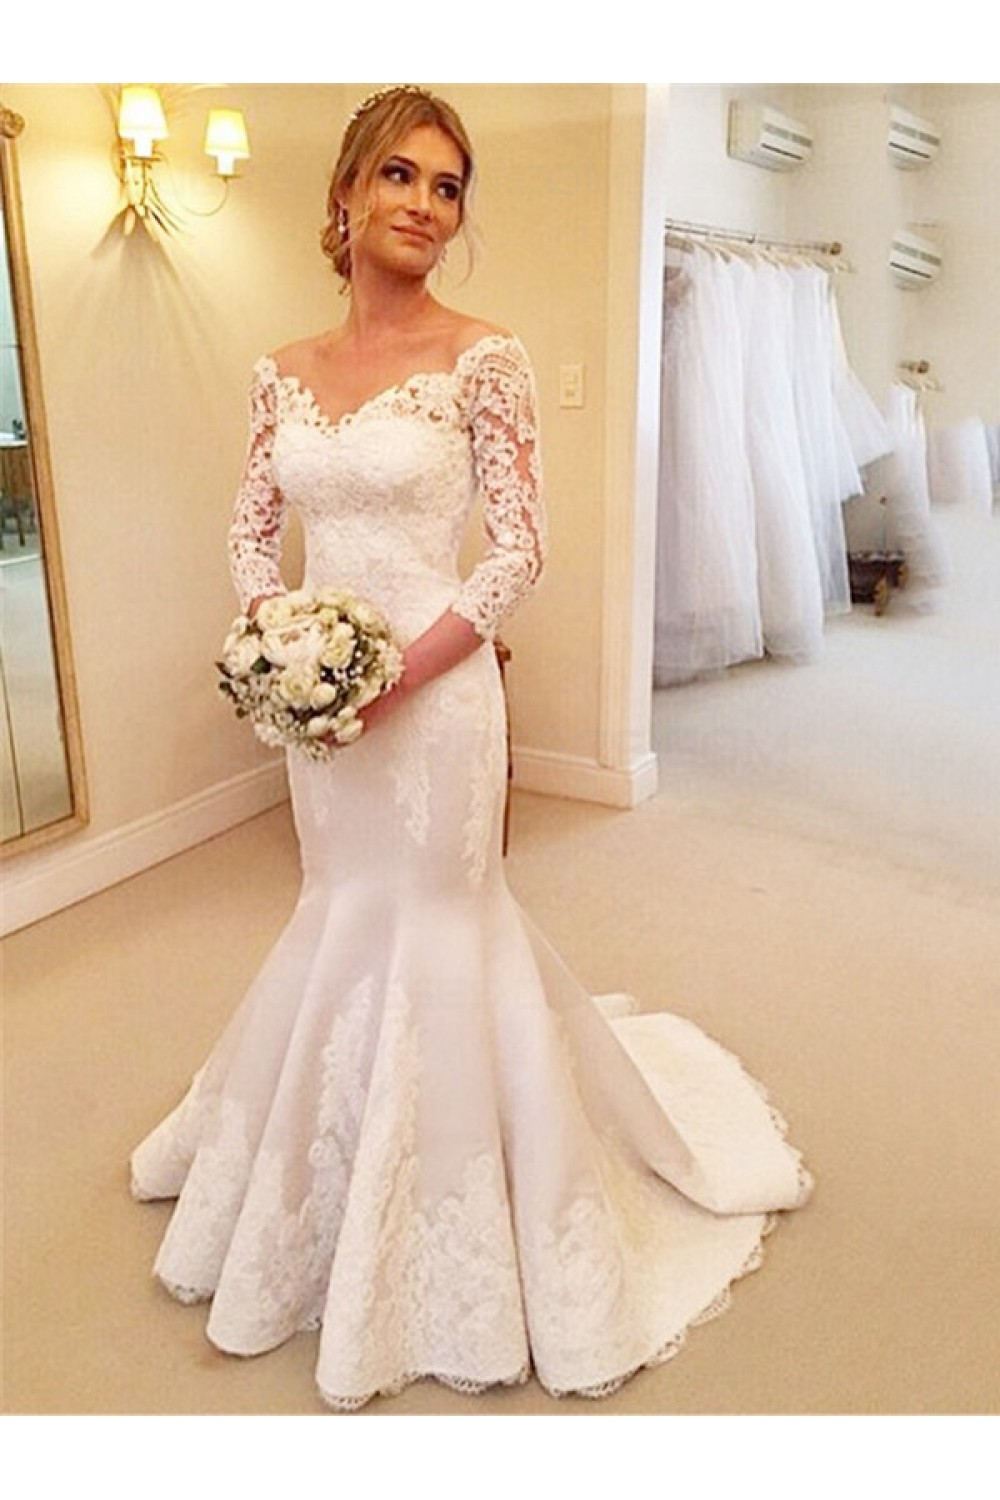 Trumpet/Mermaid Off-the-shoulder 3/4 Length Sleeve Satin Wedding Dress